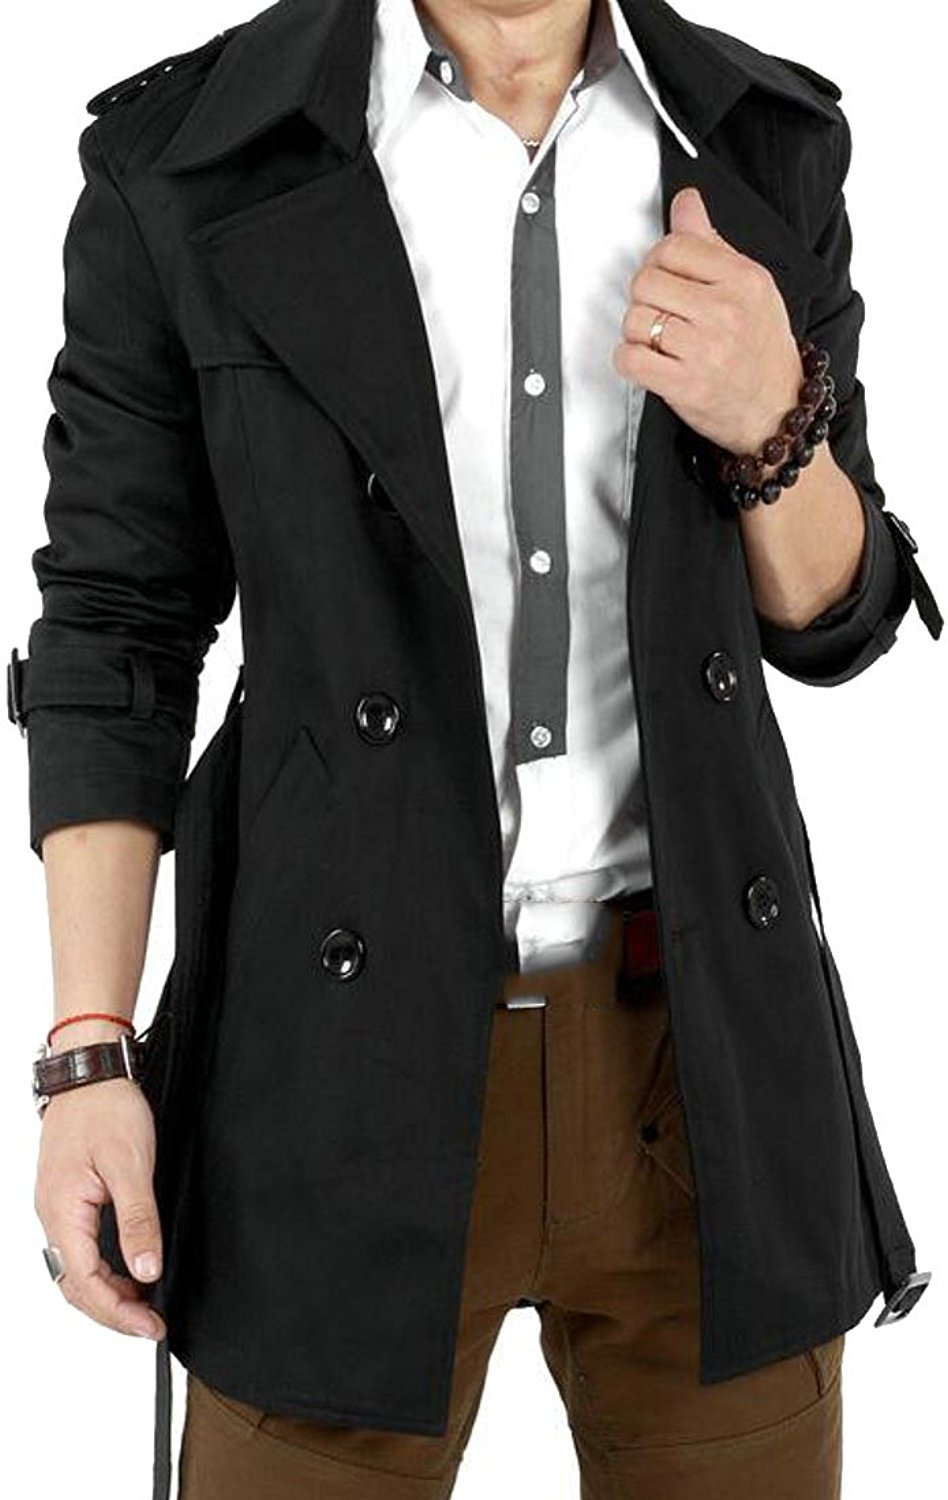 ONTBYB Men's Contemporary Solid Double Breasted Trenchcoat Jacket Clothes